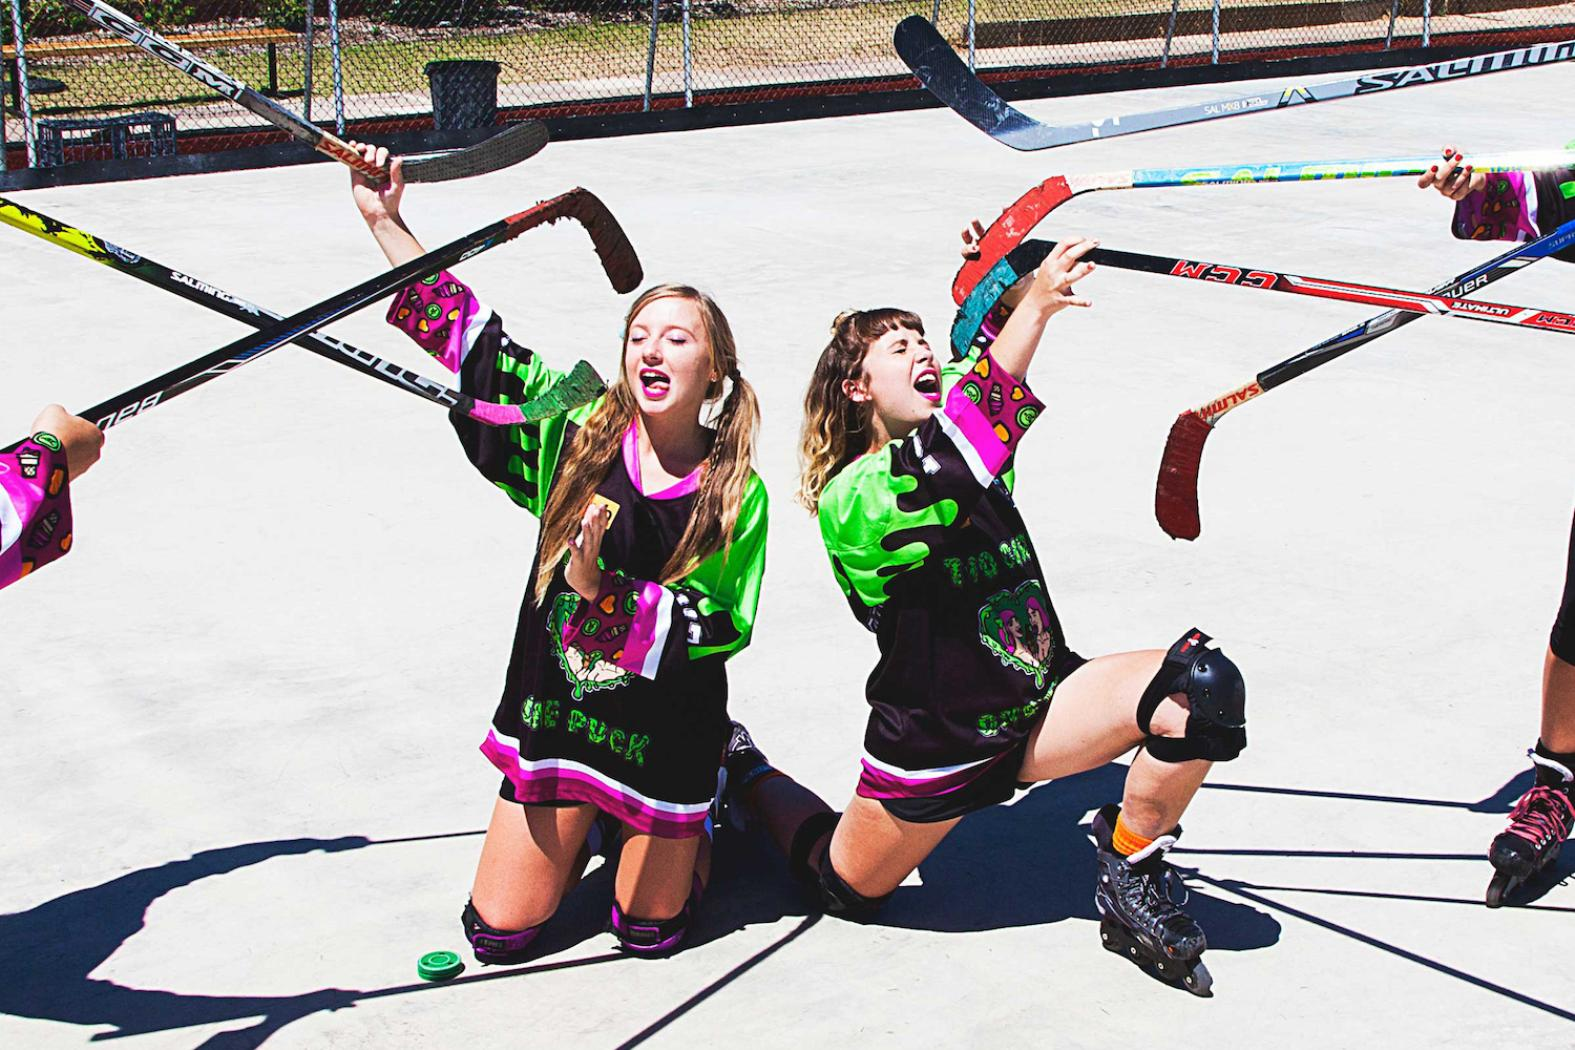 Perthhub, Two Girls One Puck, photographed by Daniel Martin for Vice.